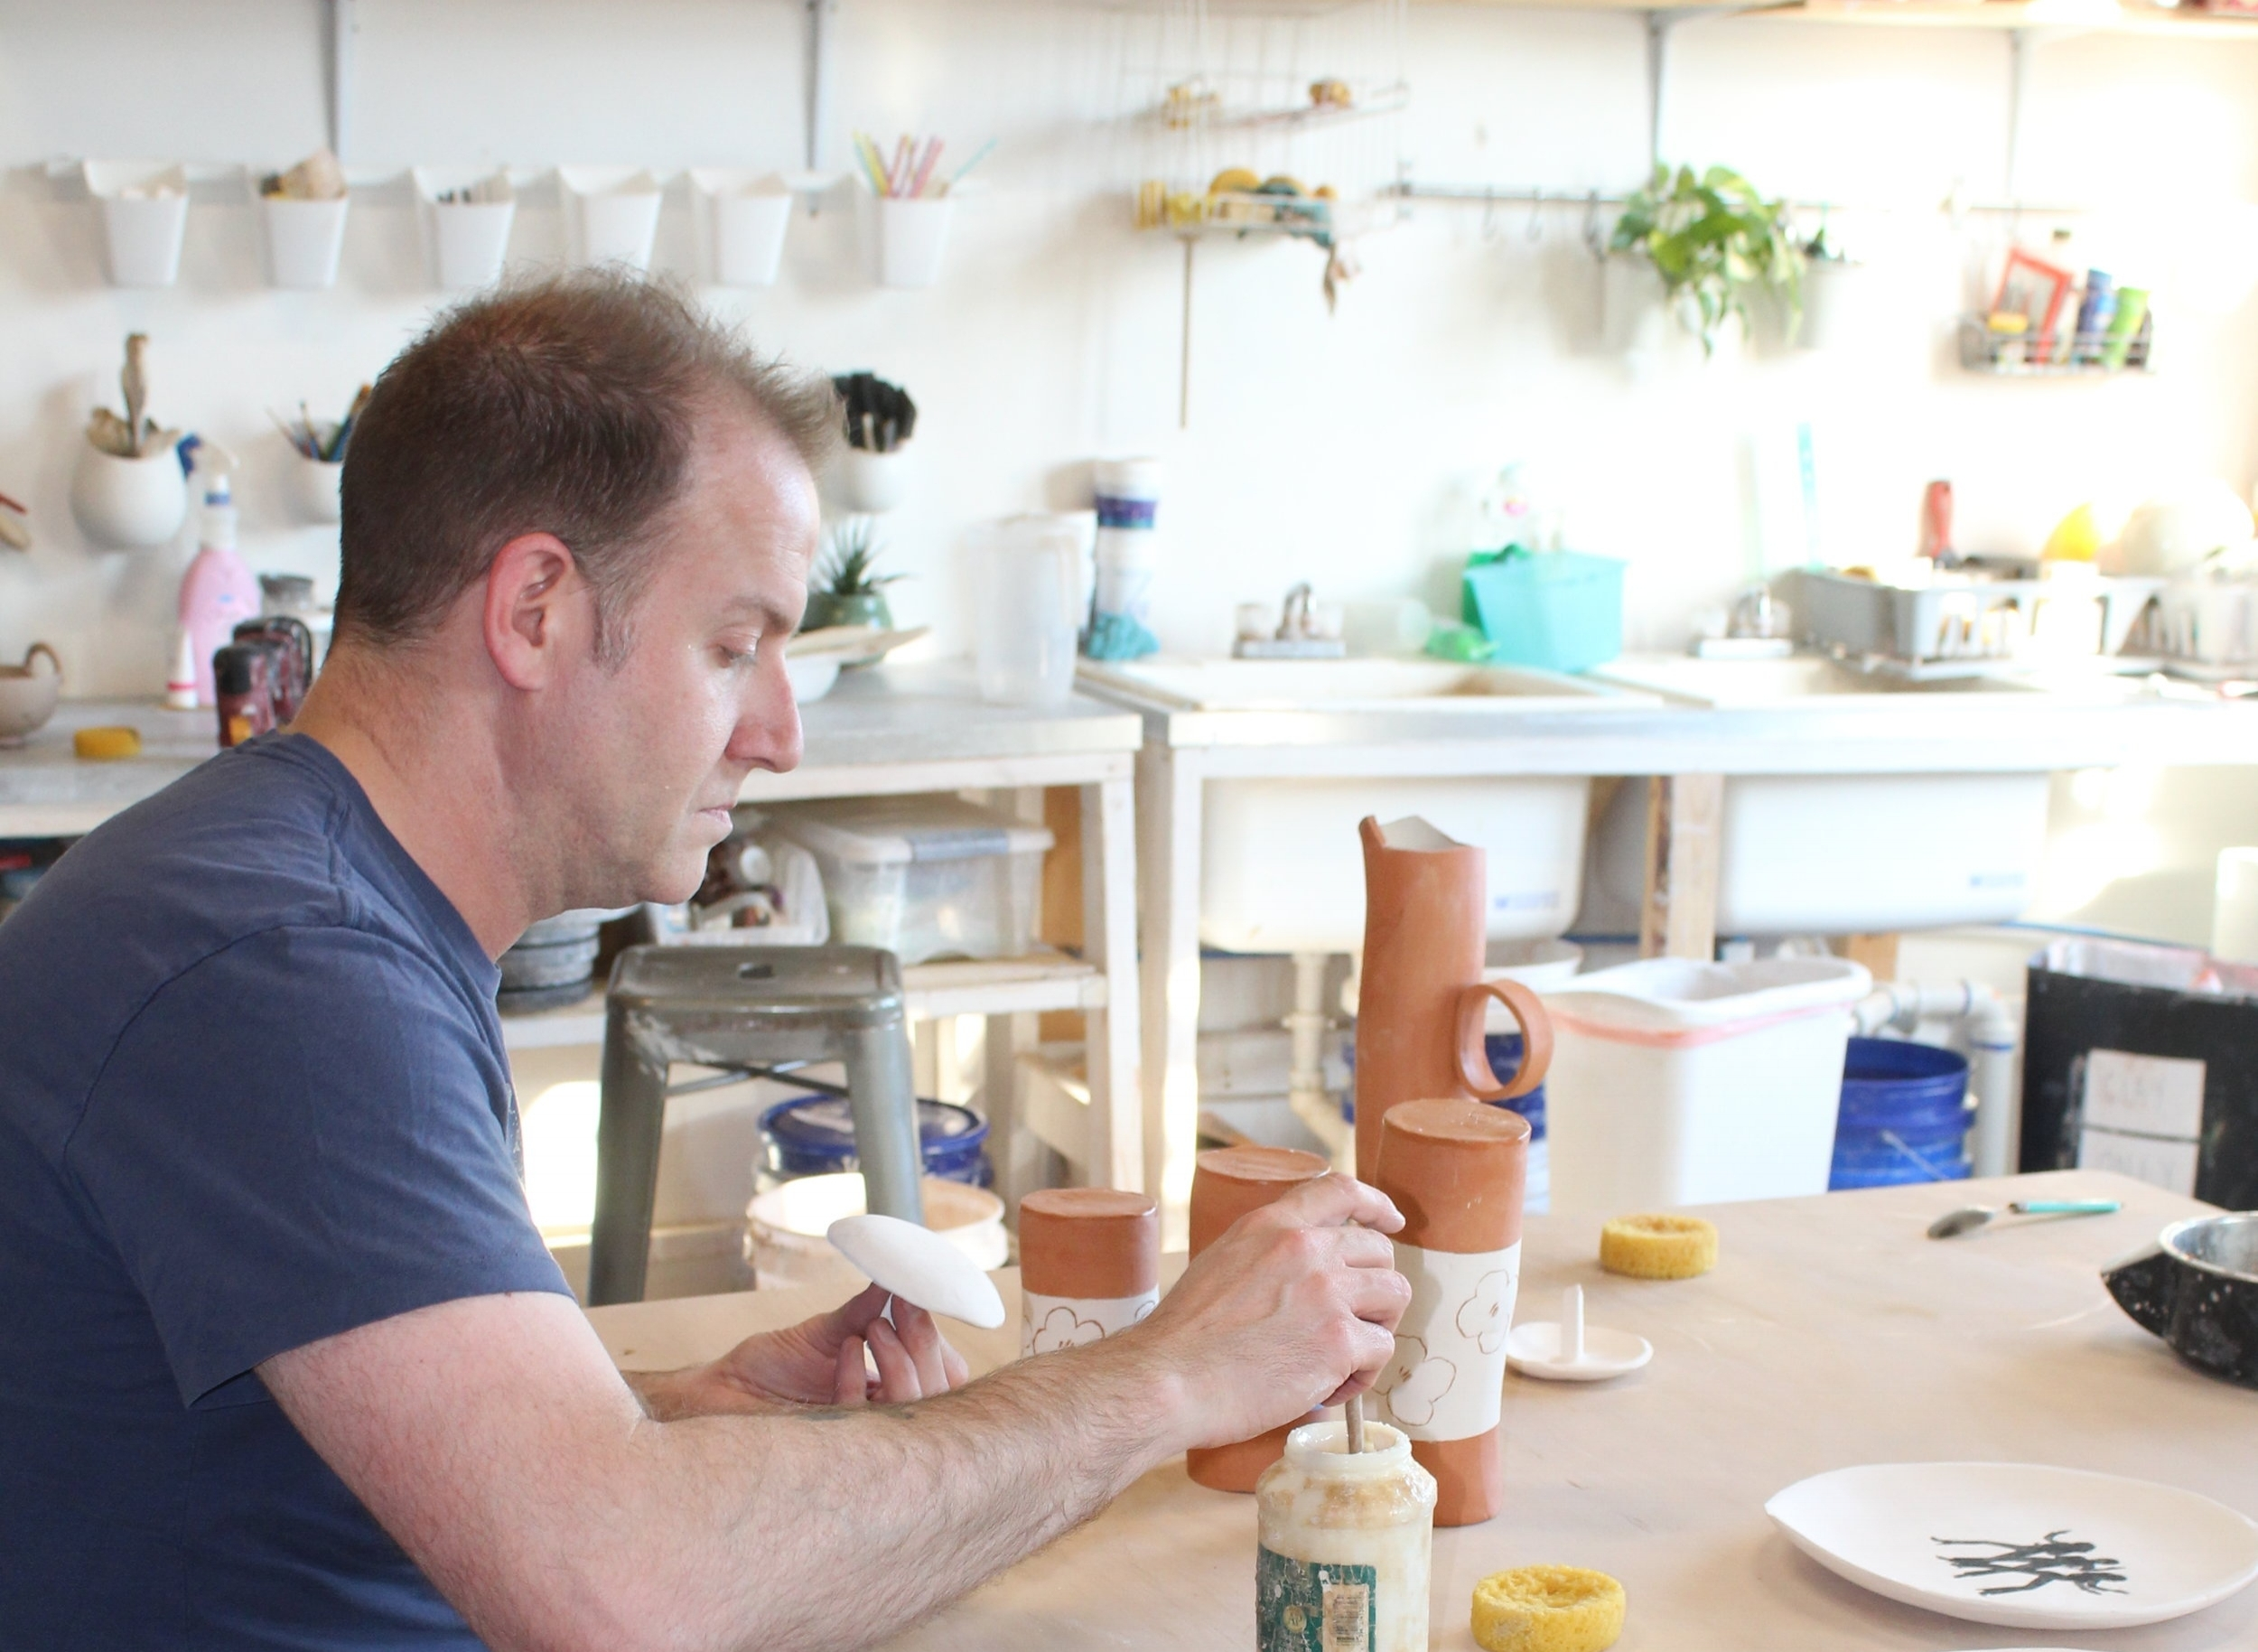 Classes - Classes run once a week for four weeks, giving students time to learn the entire process of creating a ceramic piece. Class sizes are small to allow for plenty of individual attention. Class fees include glazing, firing and use of all the tools and facilities.